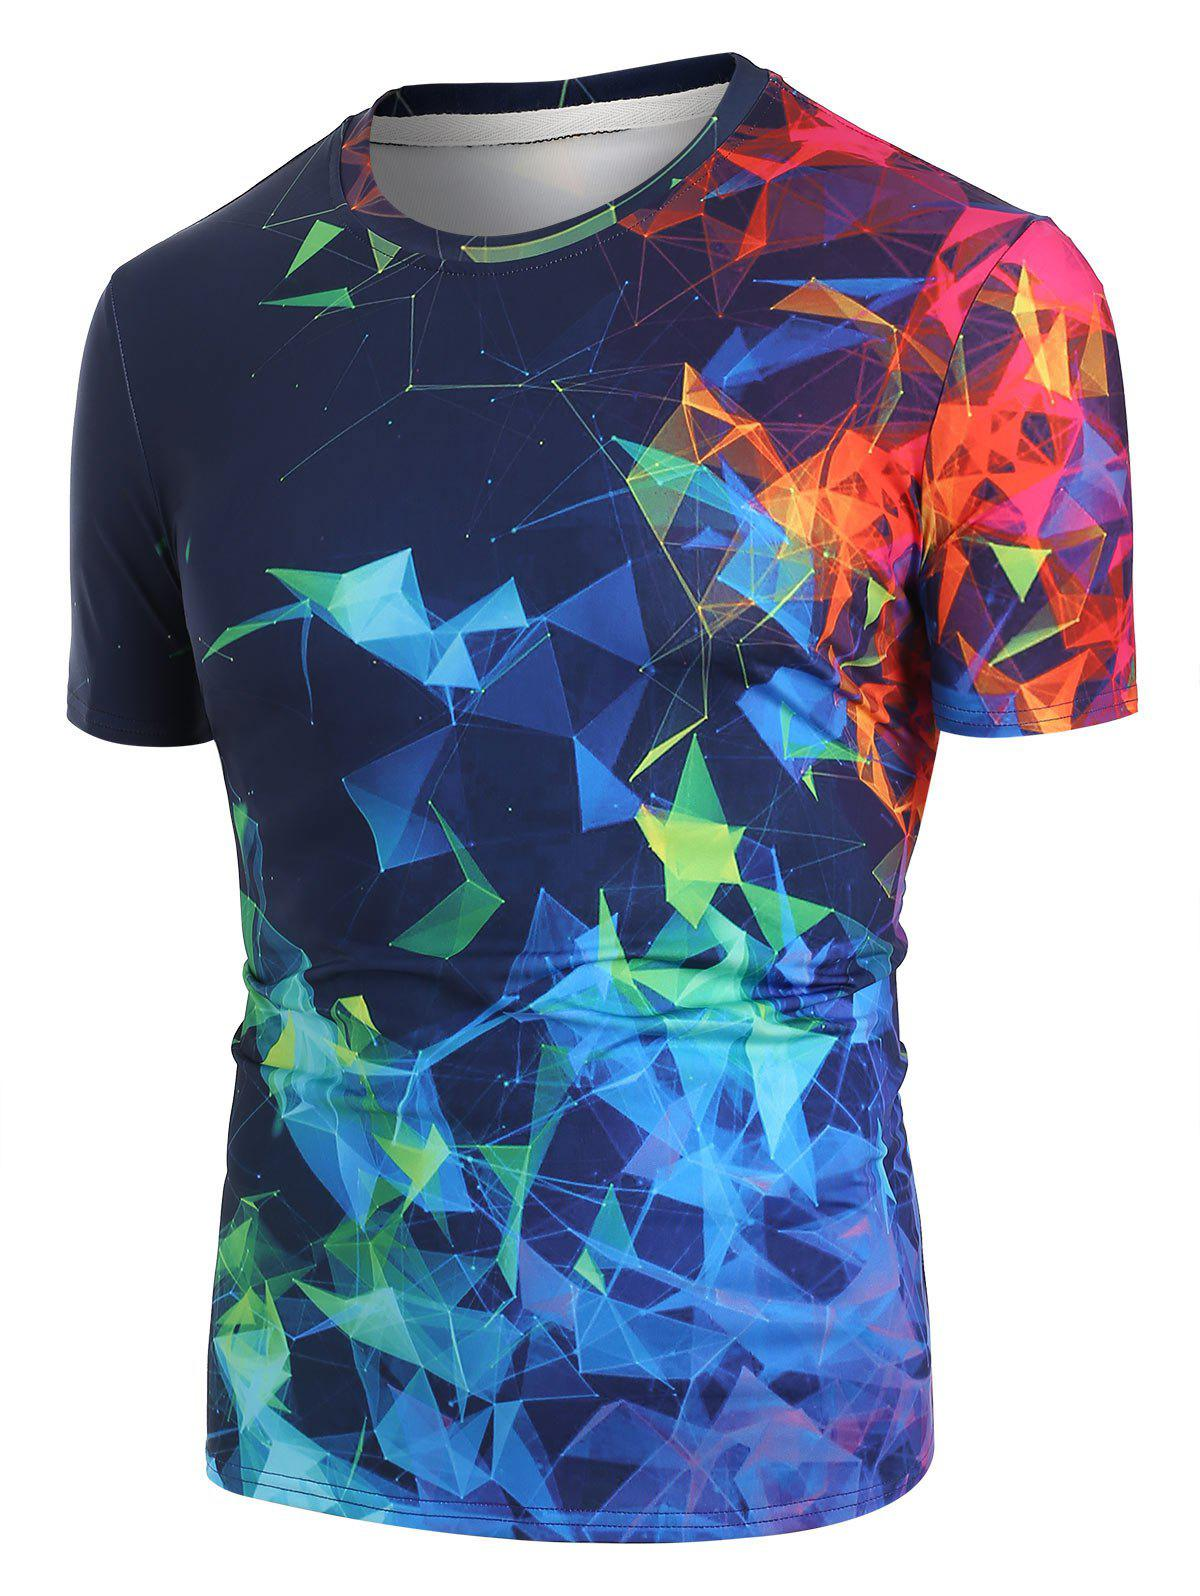 Sale Colorful Geometric 3D Print Short Sleeve T-shirt